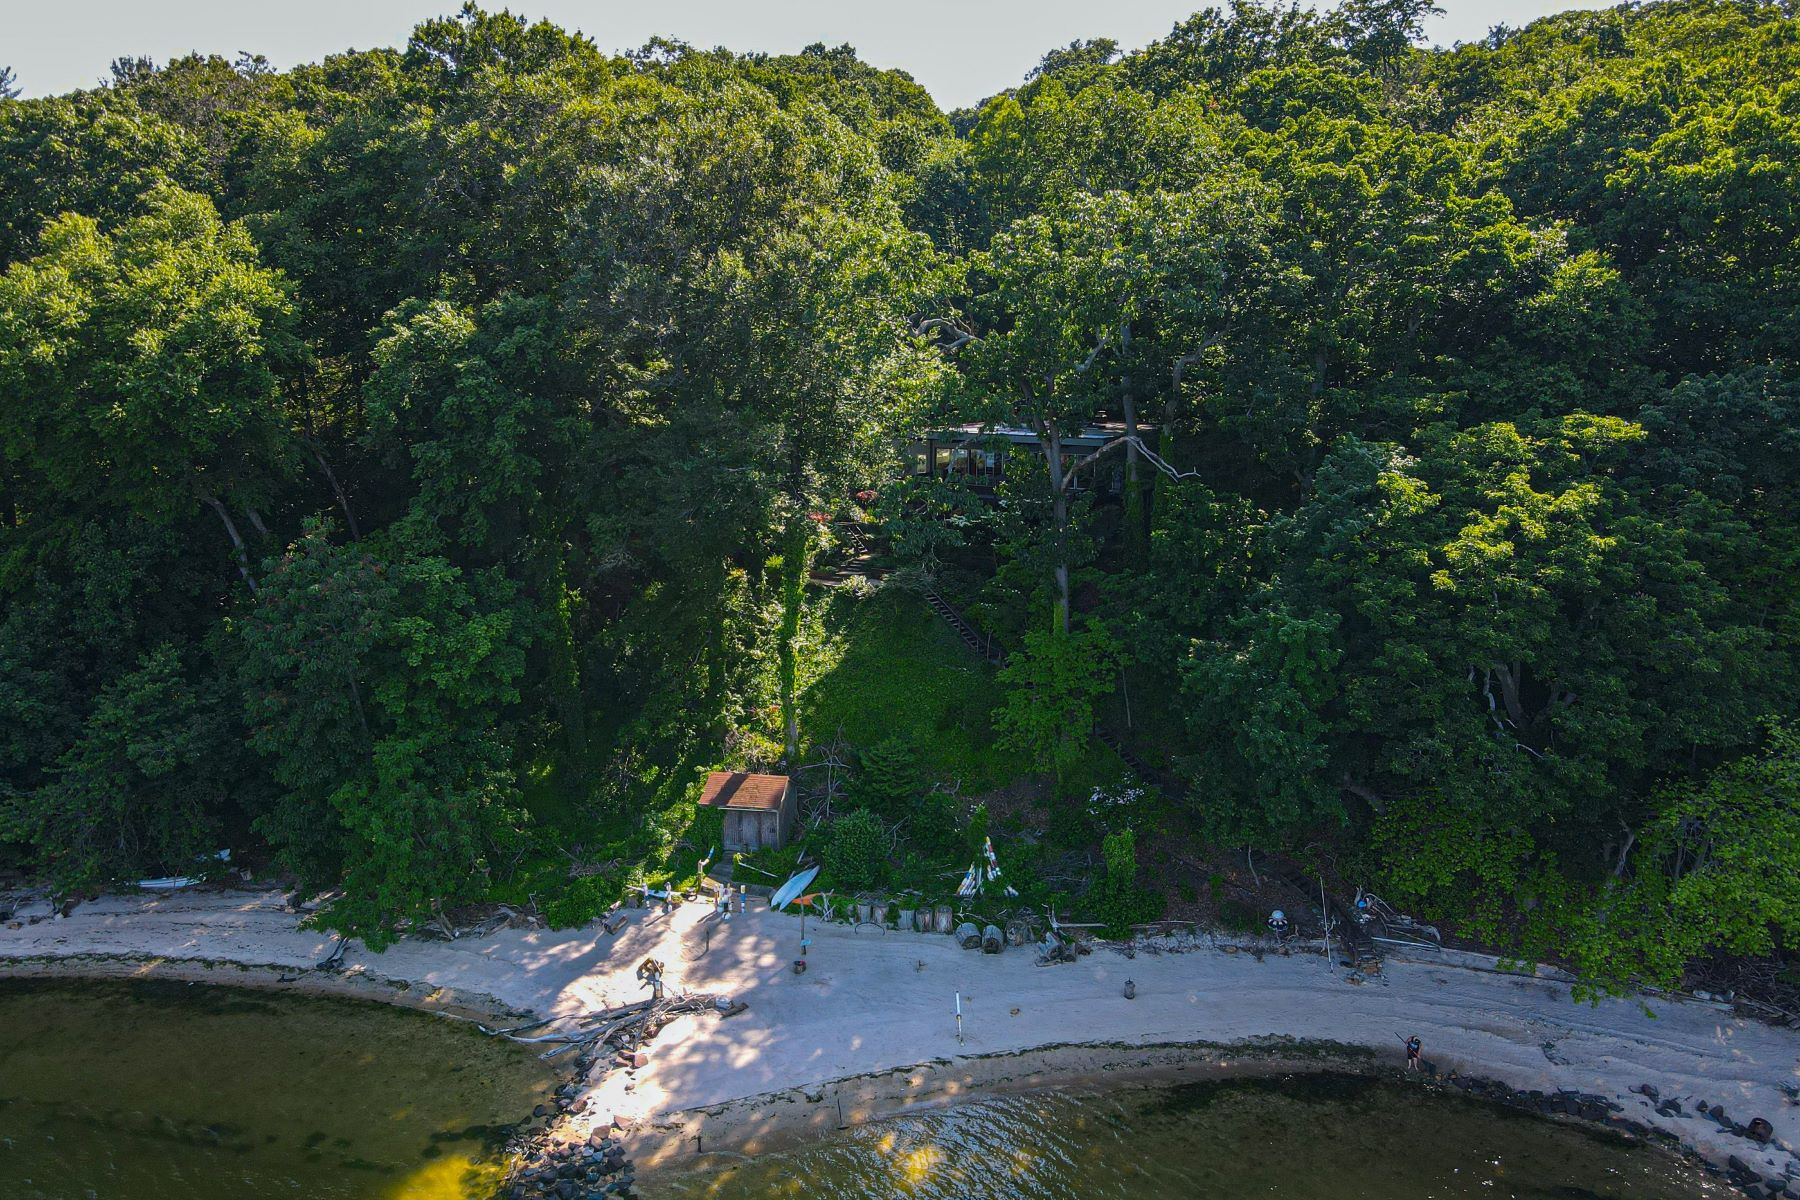 Single Family Homes for Sale at Laurel Hollow 1372 Ridge Road Laurel Hollow, New York 11791 United States